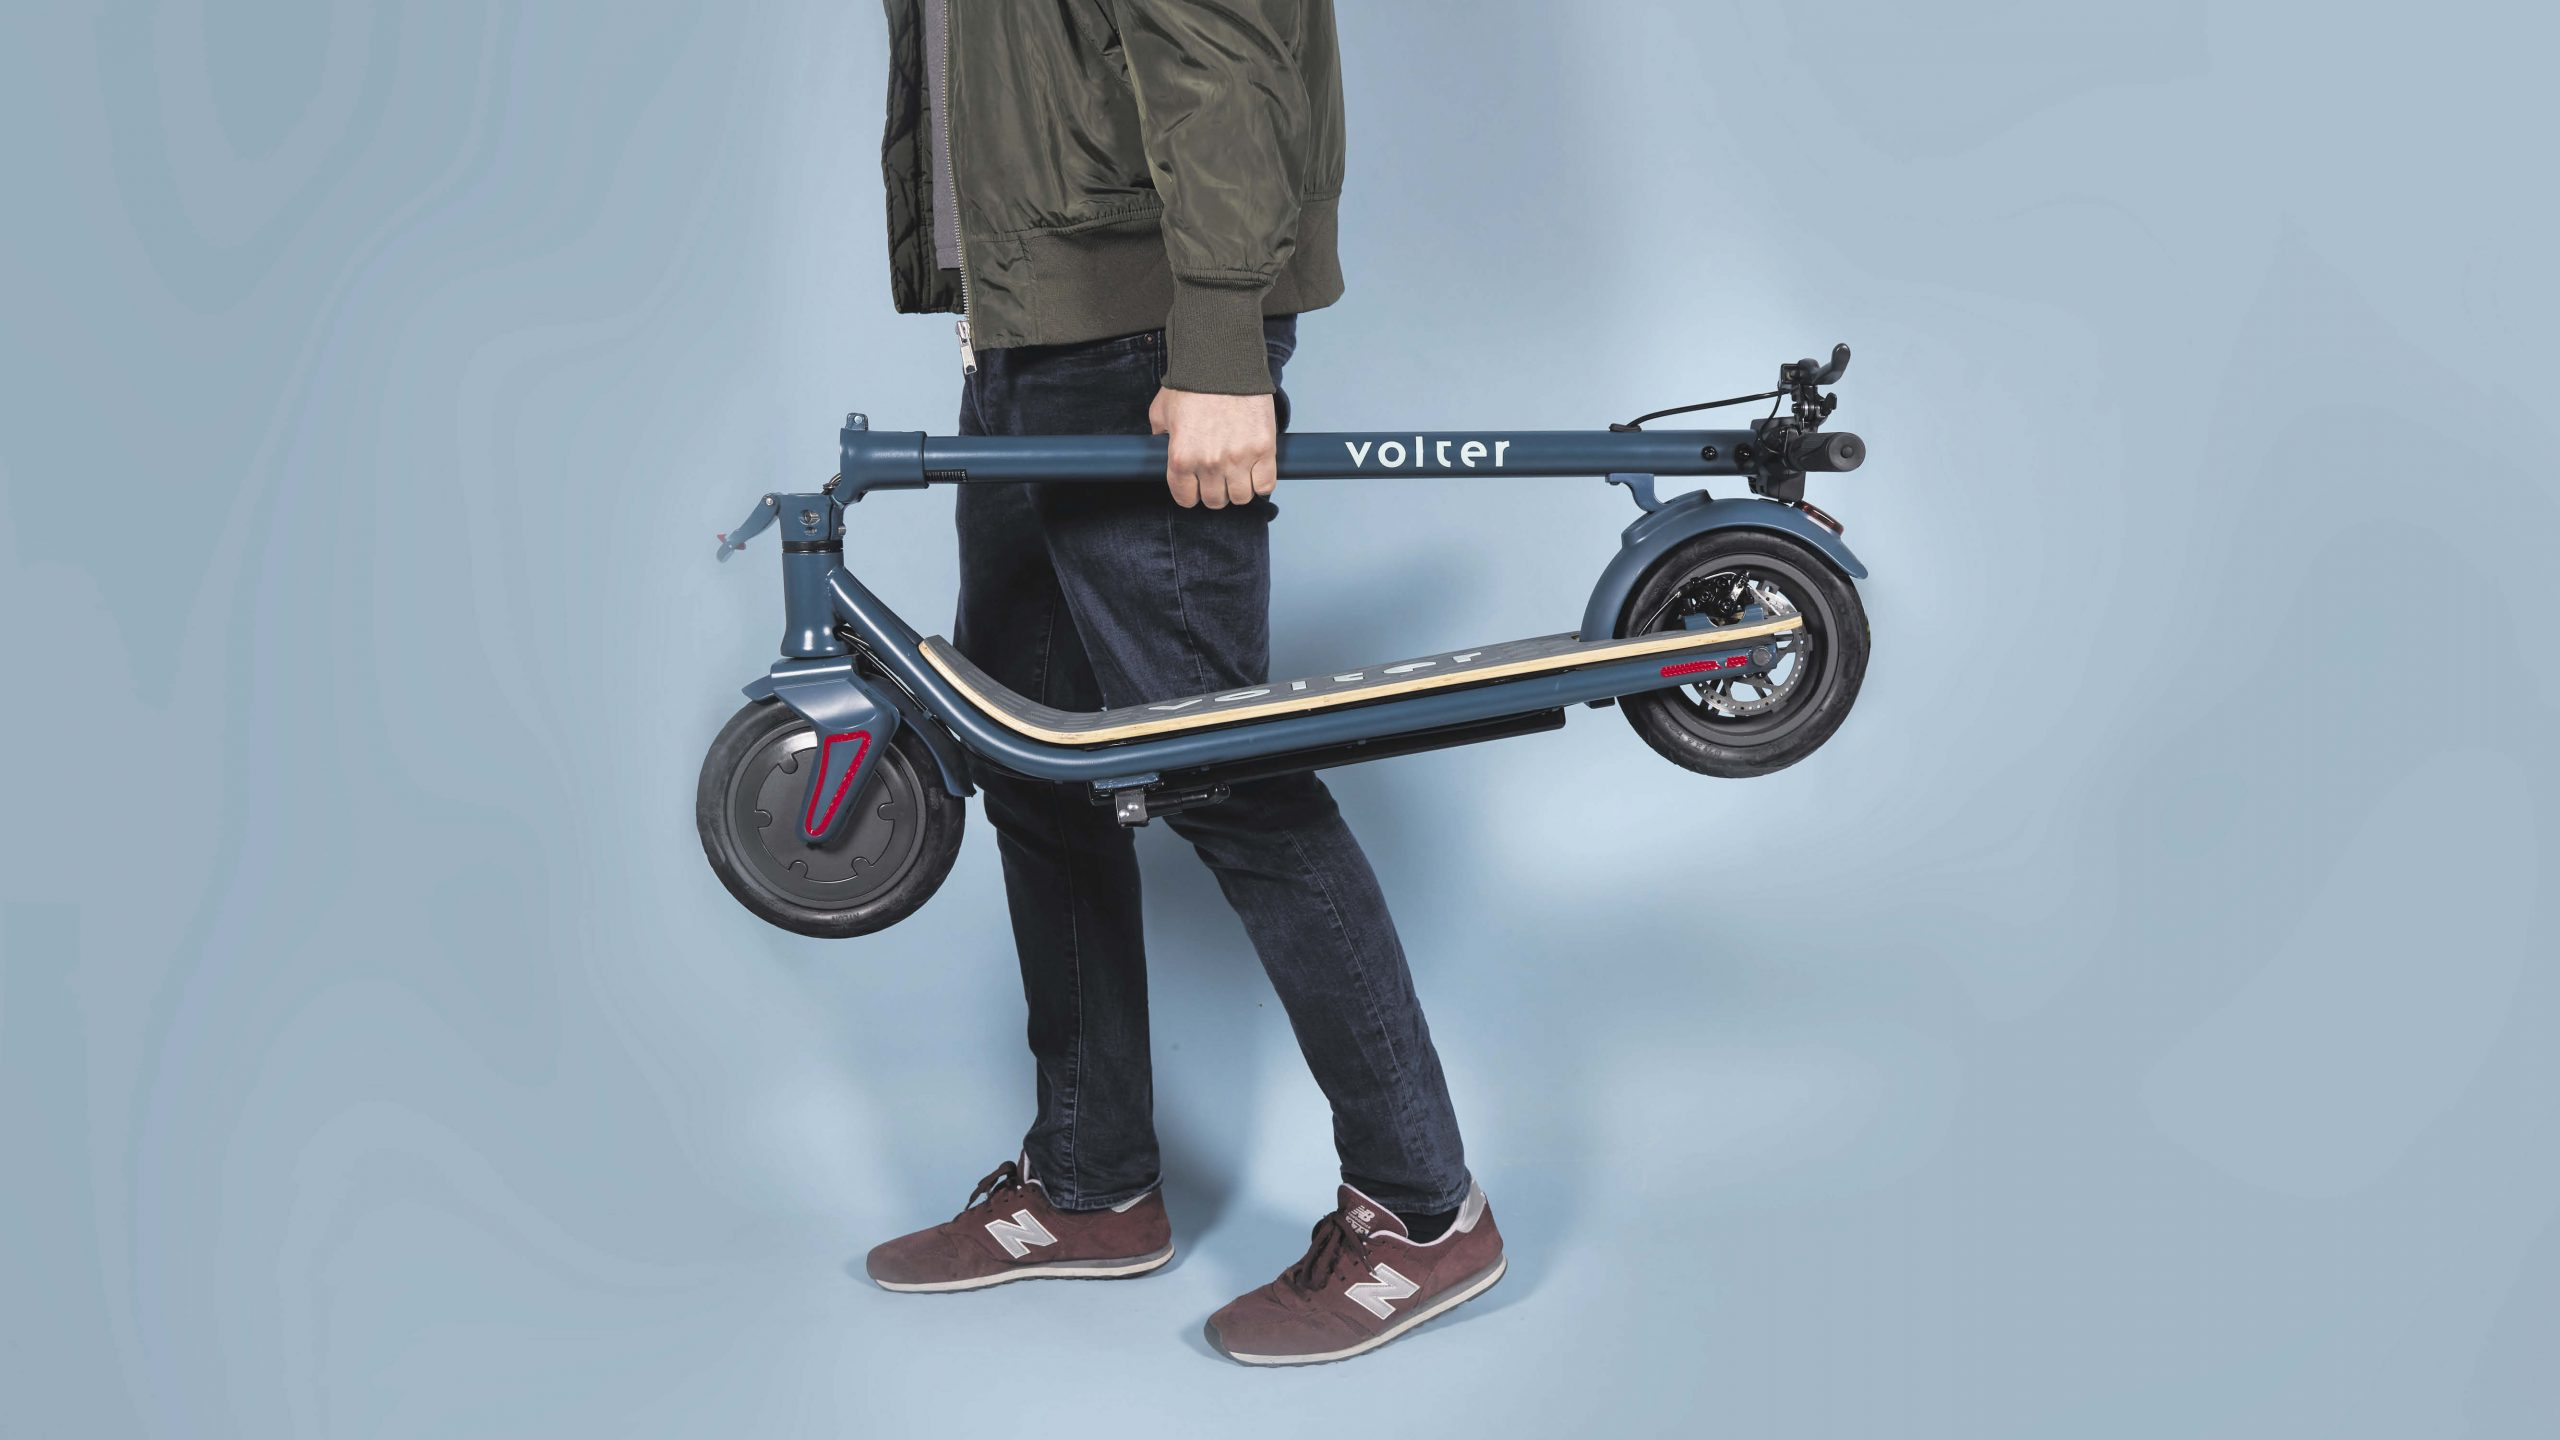 Win a Volter Electric Scooter Worth £499!